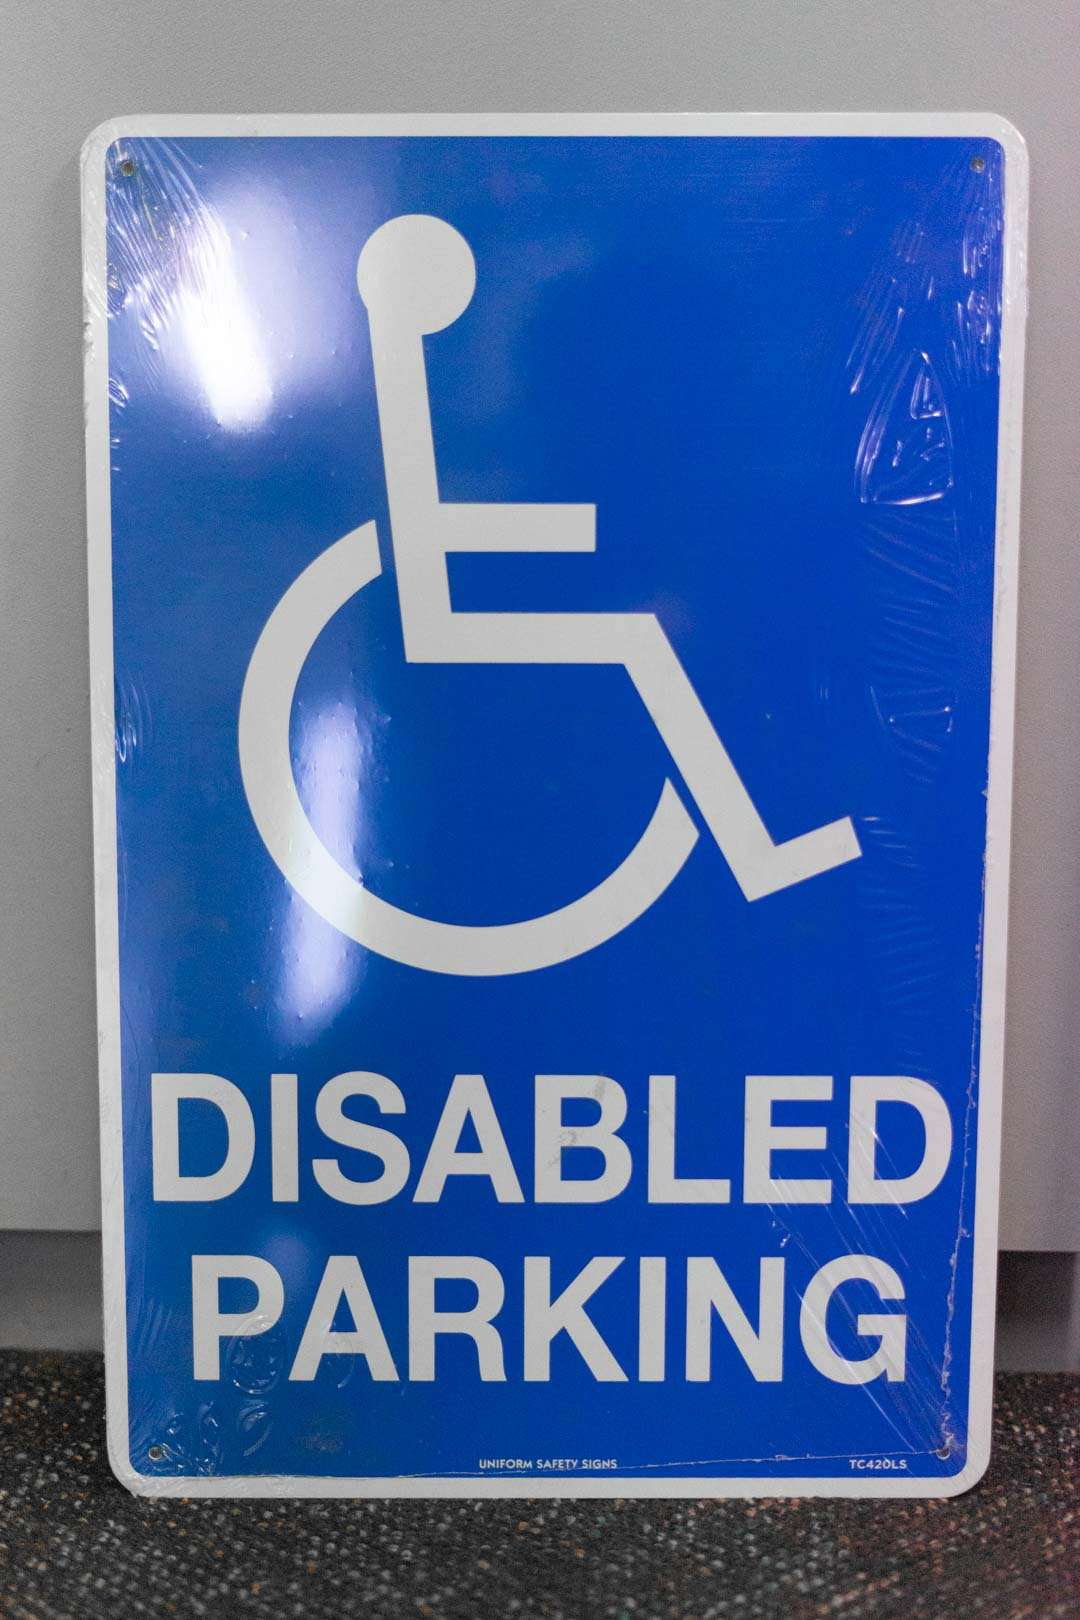 Disabled Parking Safety Sign